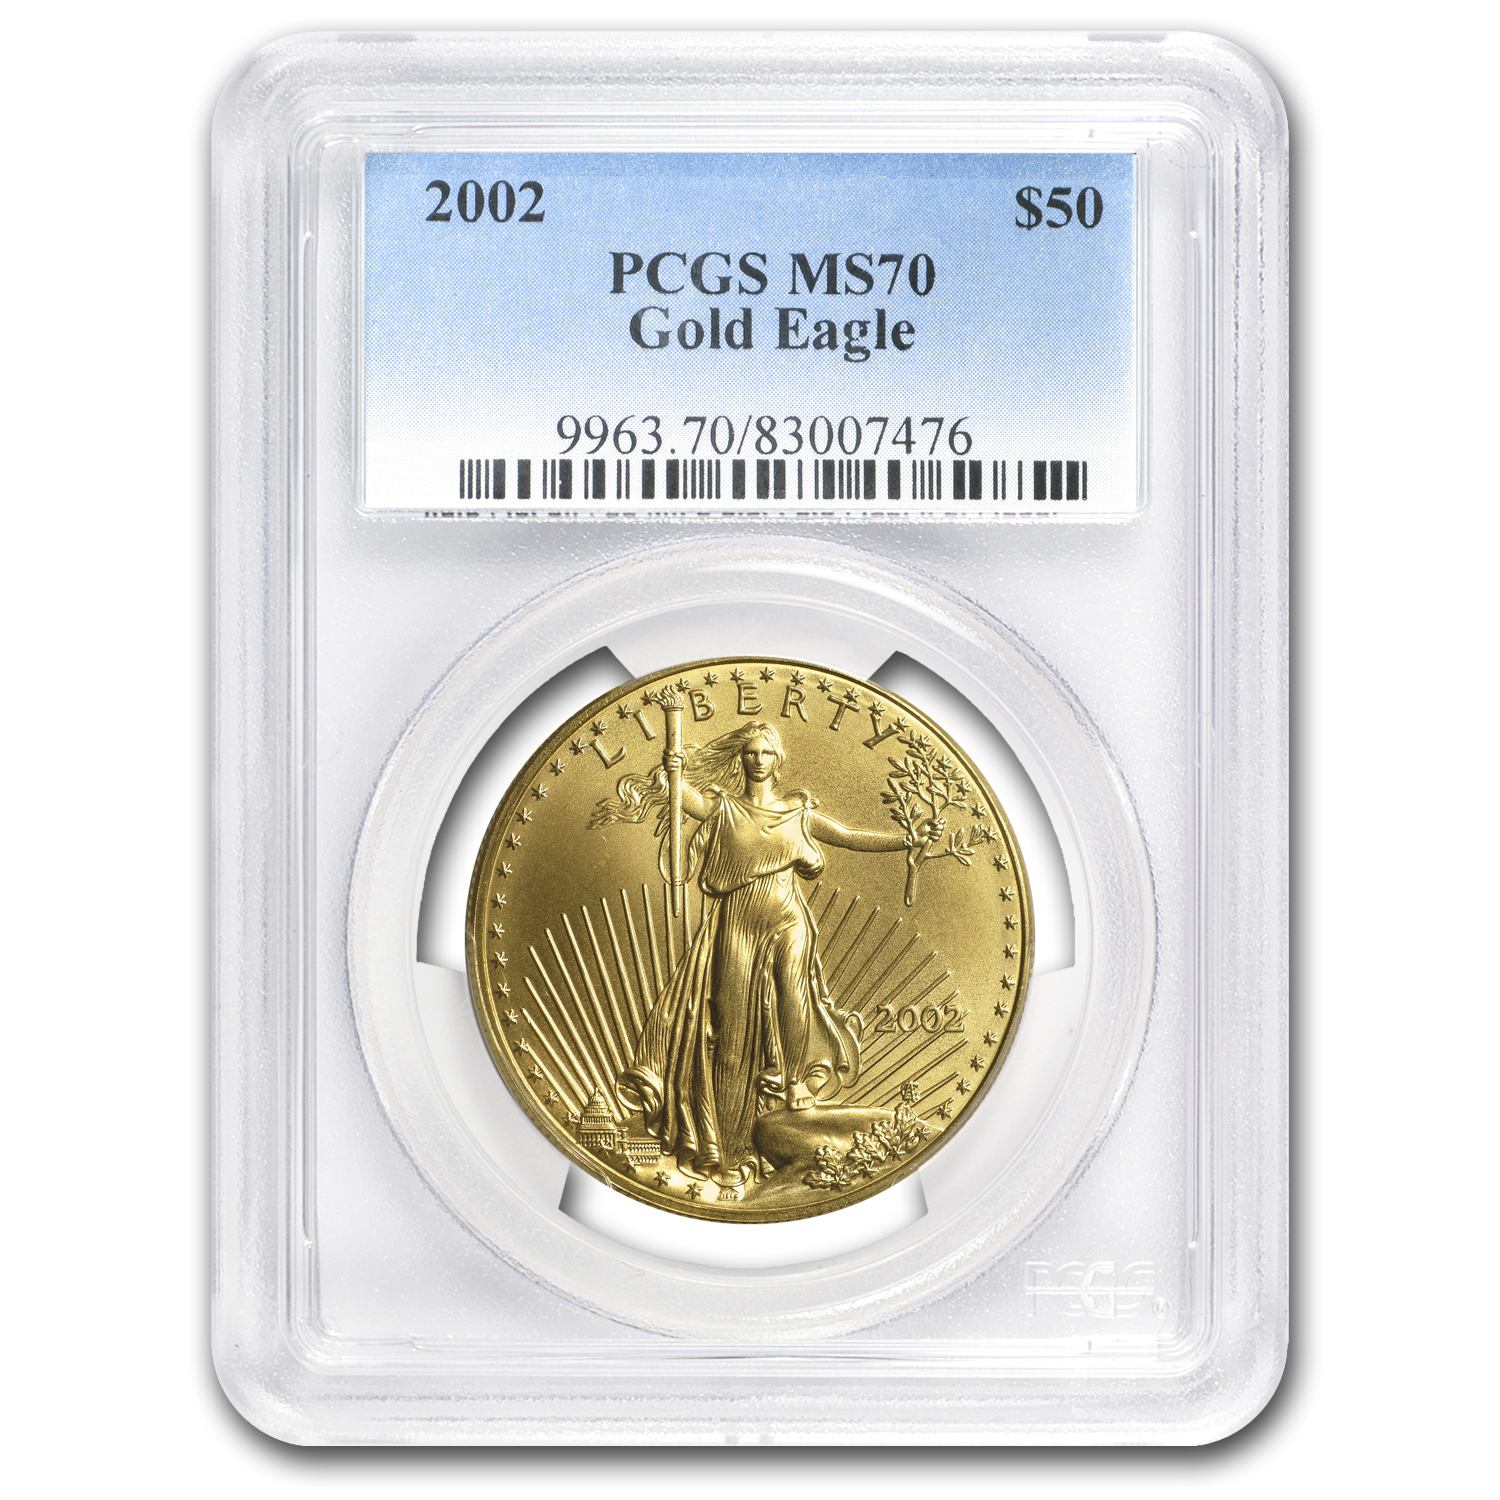 2002 1 oz Gold American Eagle MS-70 PCGS